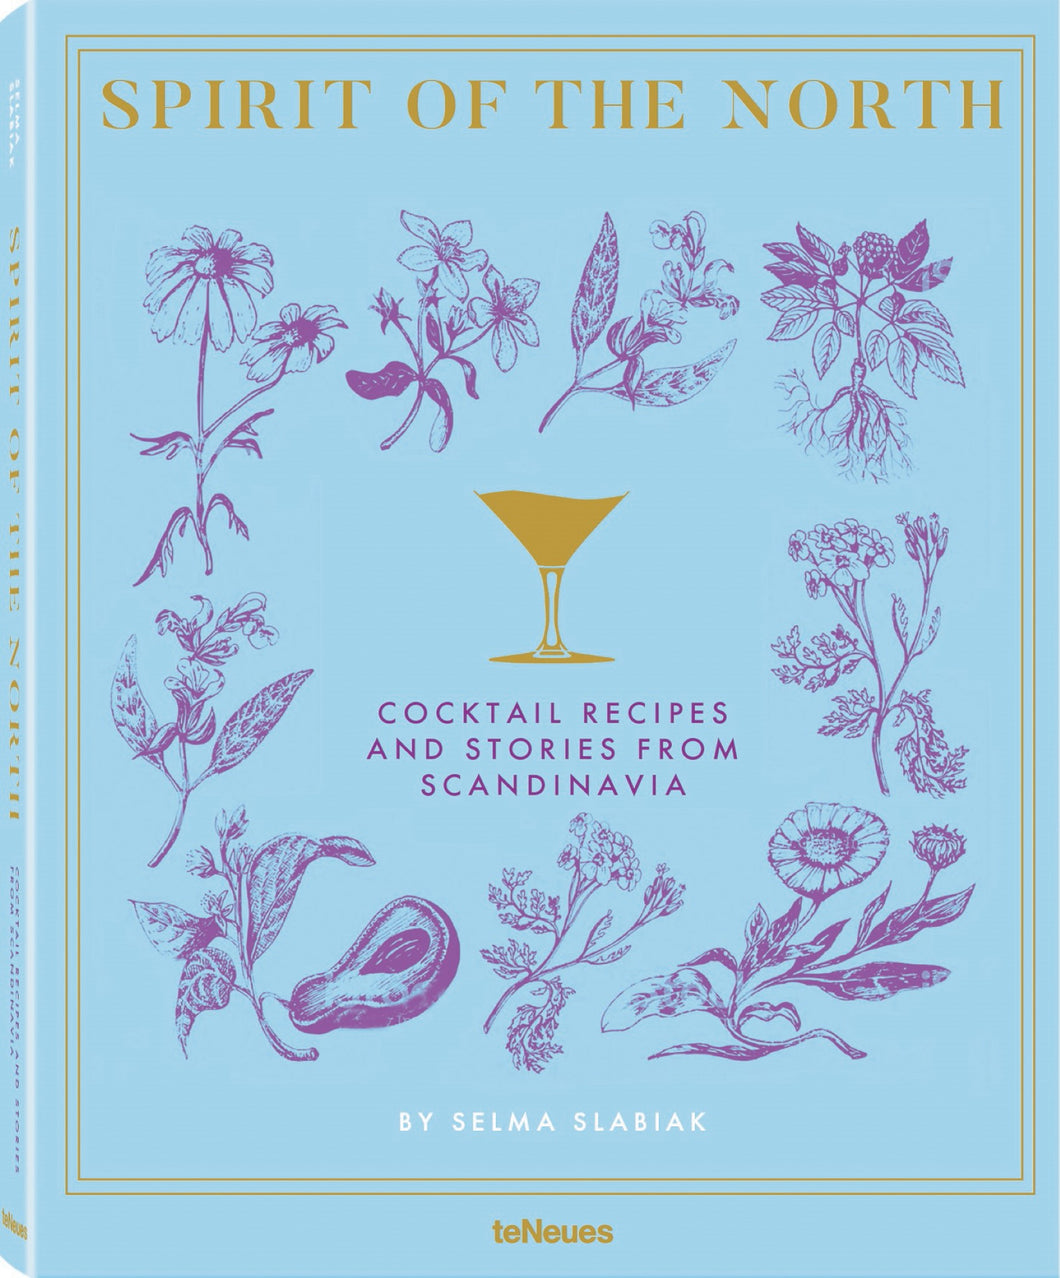 Spirit of the North - Cocktail Recipes and Stories from Scandinavia